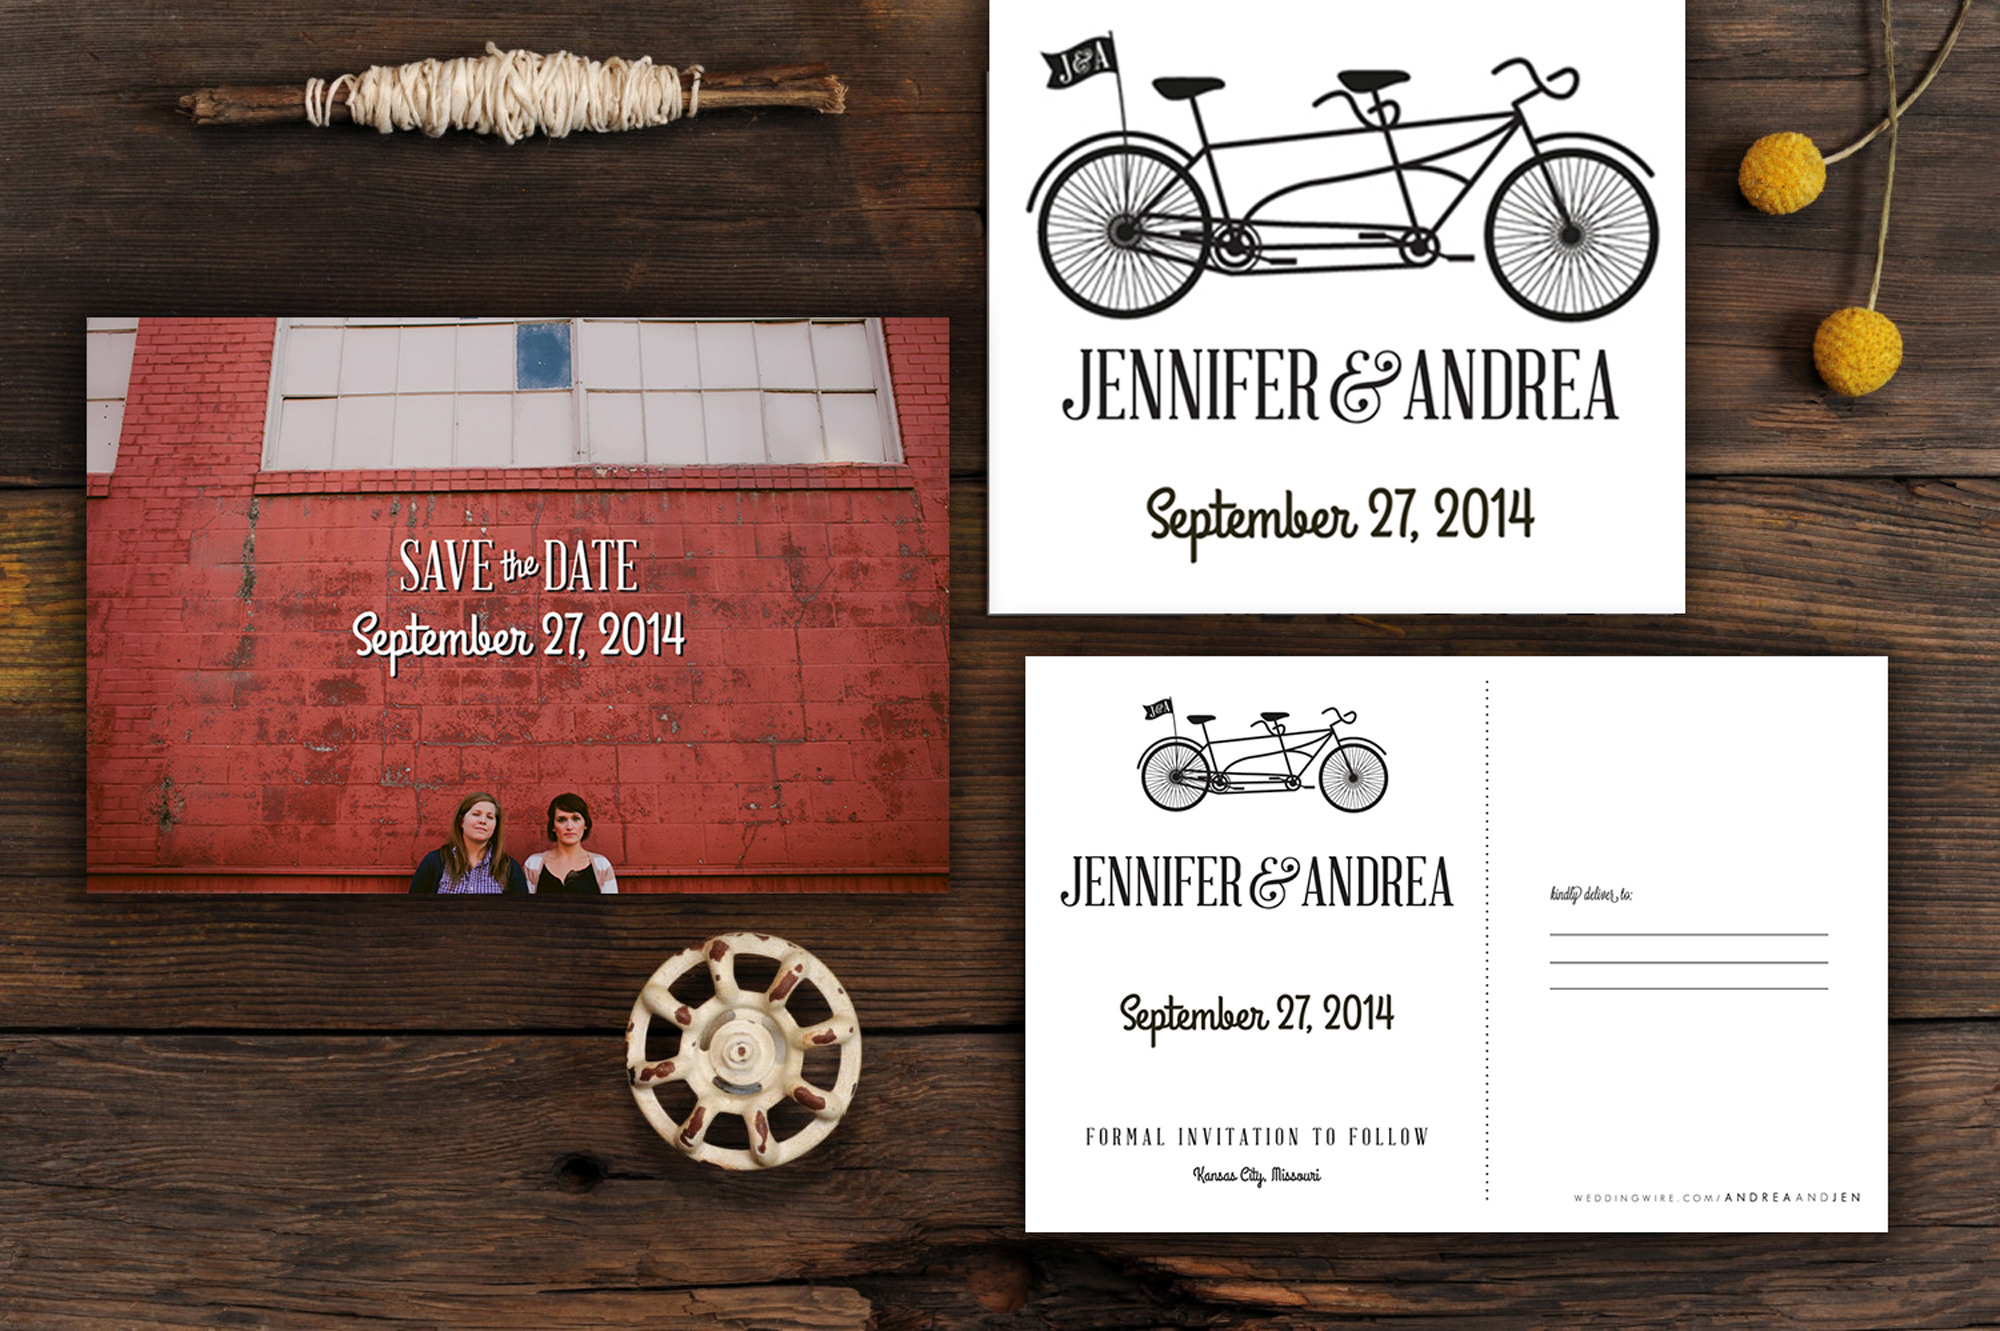 Jen & Andrea are fun and full of life.  These two lovely ladies bring so much love and laughter to every one they meet. Their save the date is approachable, friendly and memorable: just like the two of them.